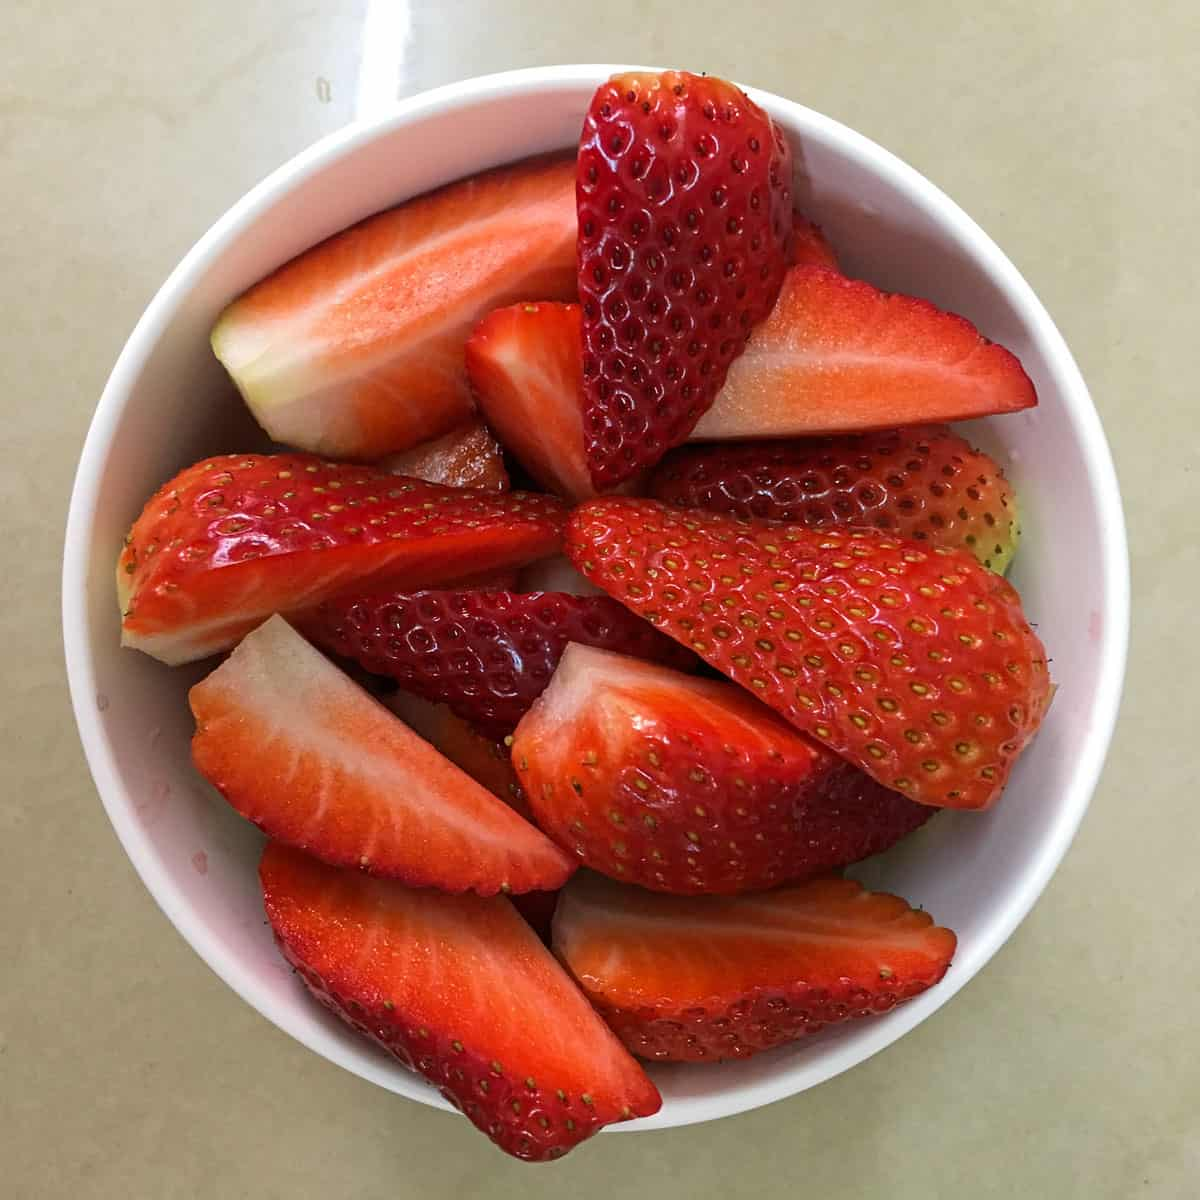 A bowl of cut strawberries